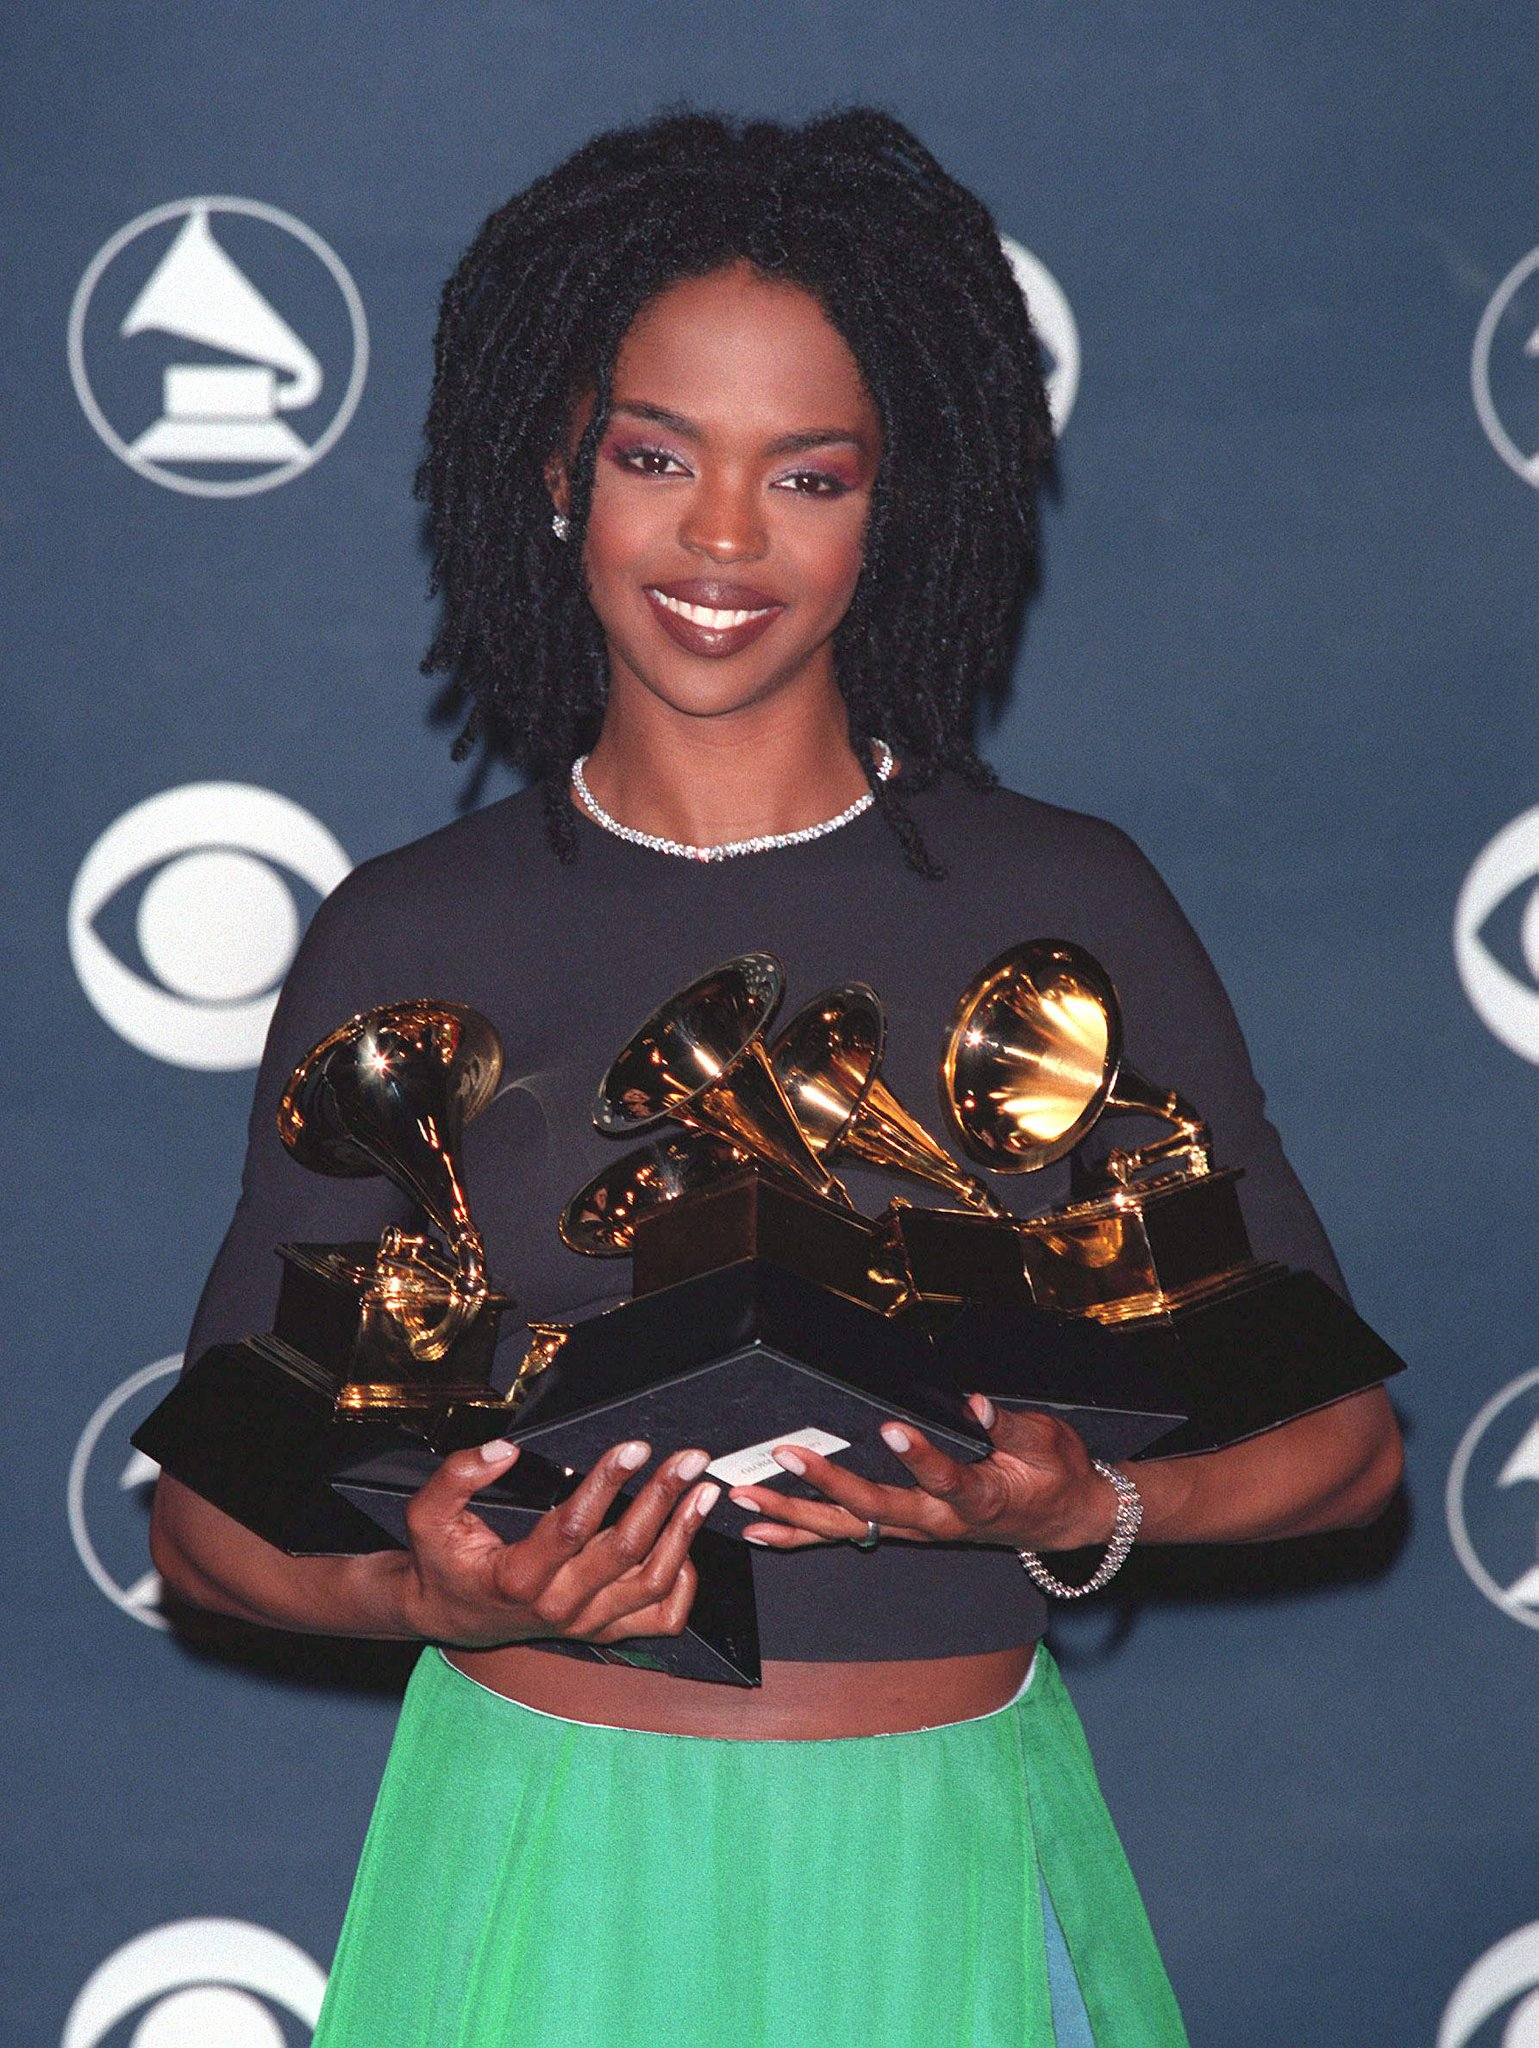 """RT @sonsandbros: On this day in 1999, """"The Miseducation of Lauryn Hill"""" set the record for most Grammys won by a woman in one night. http:/…"""